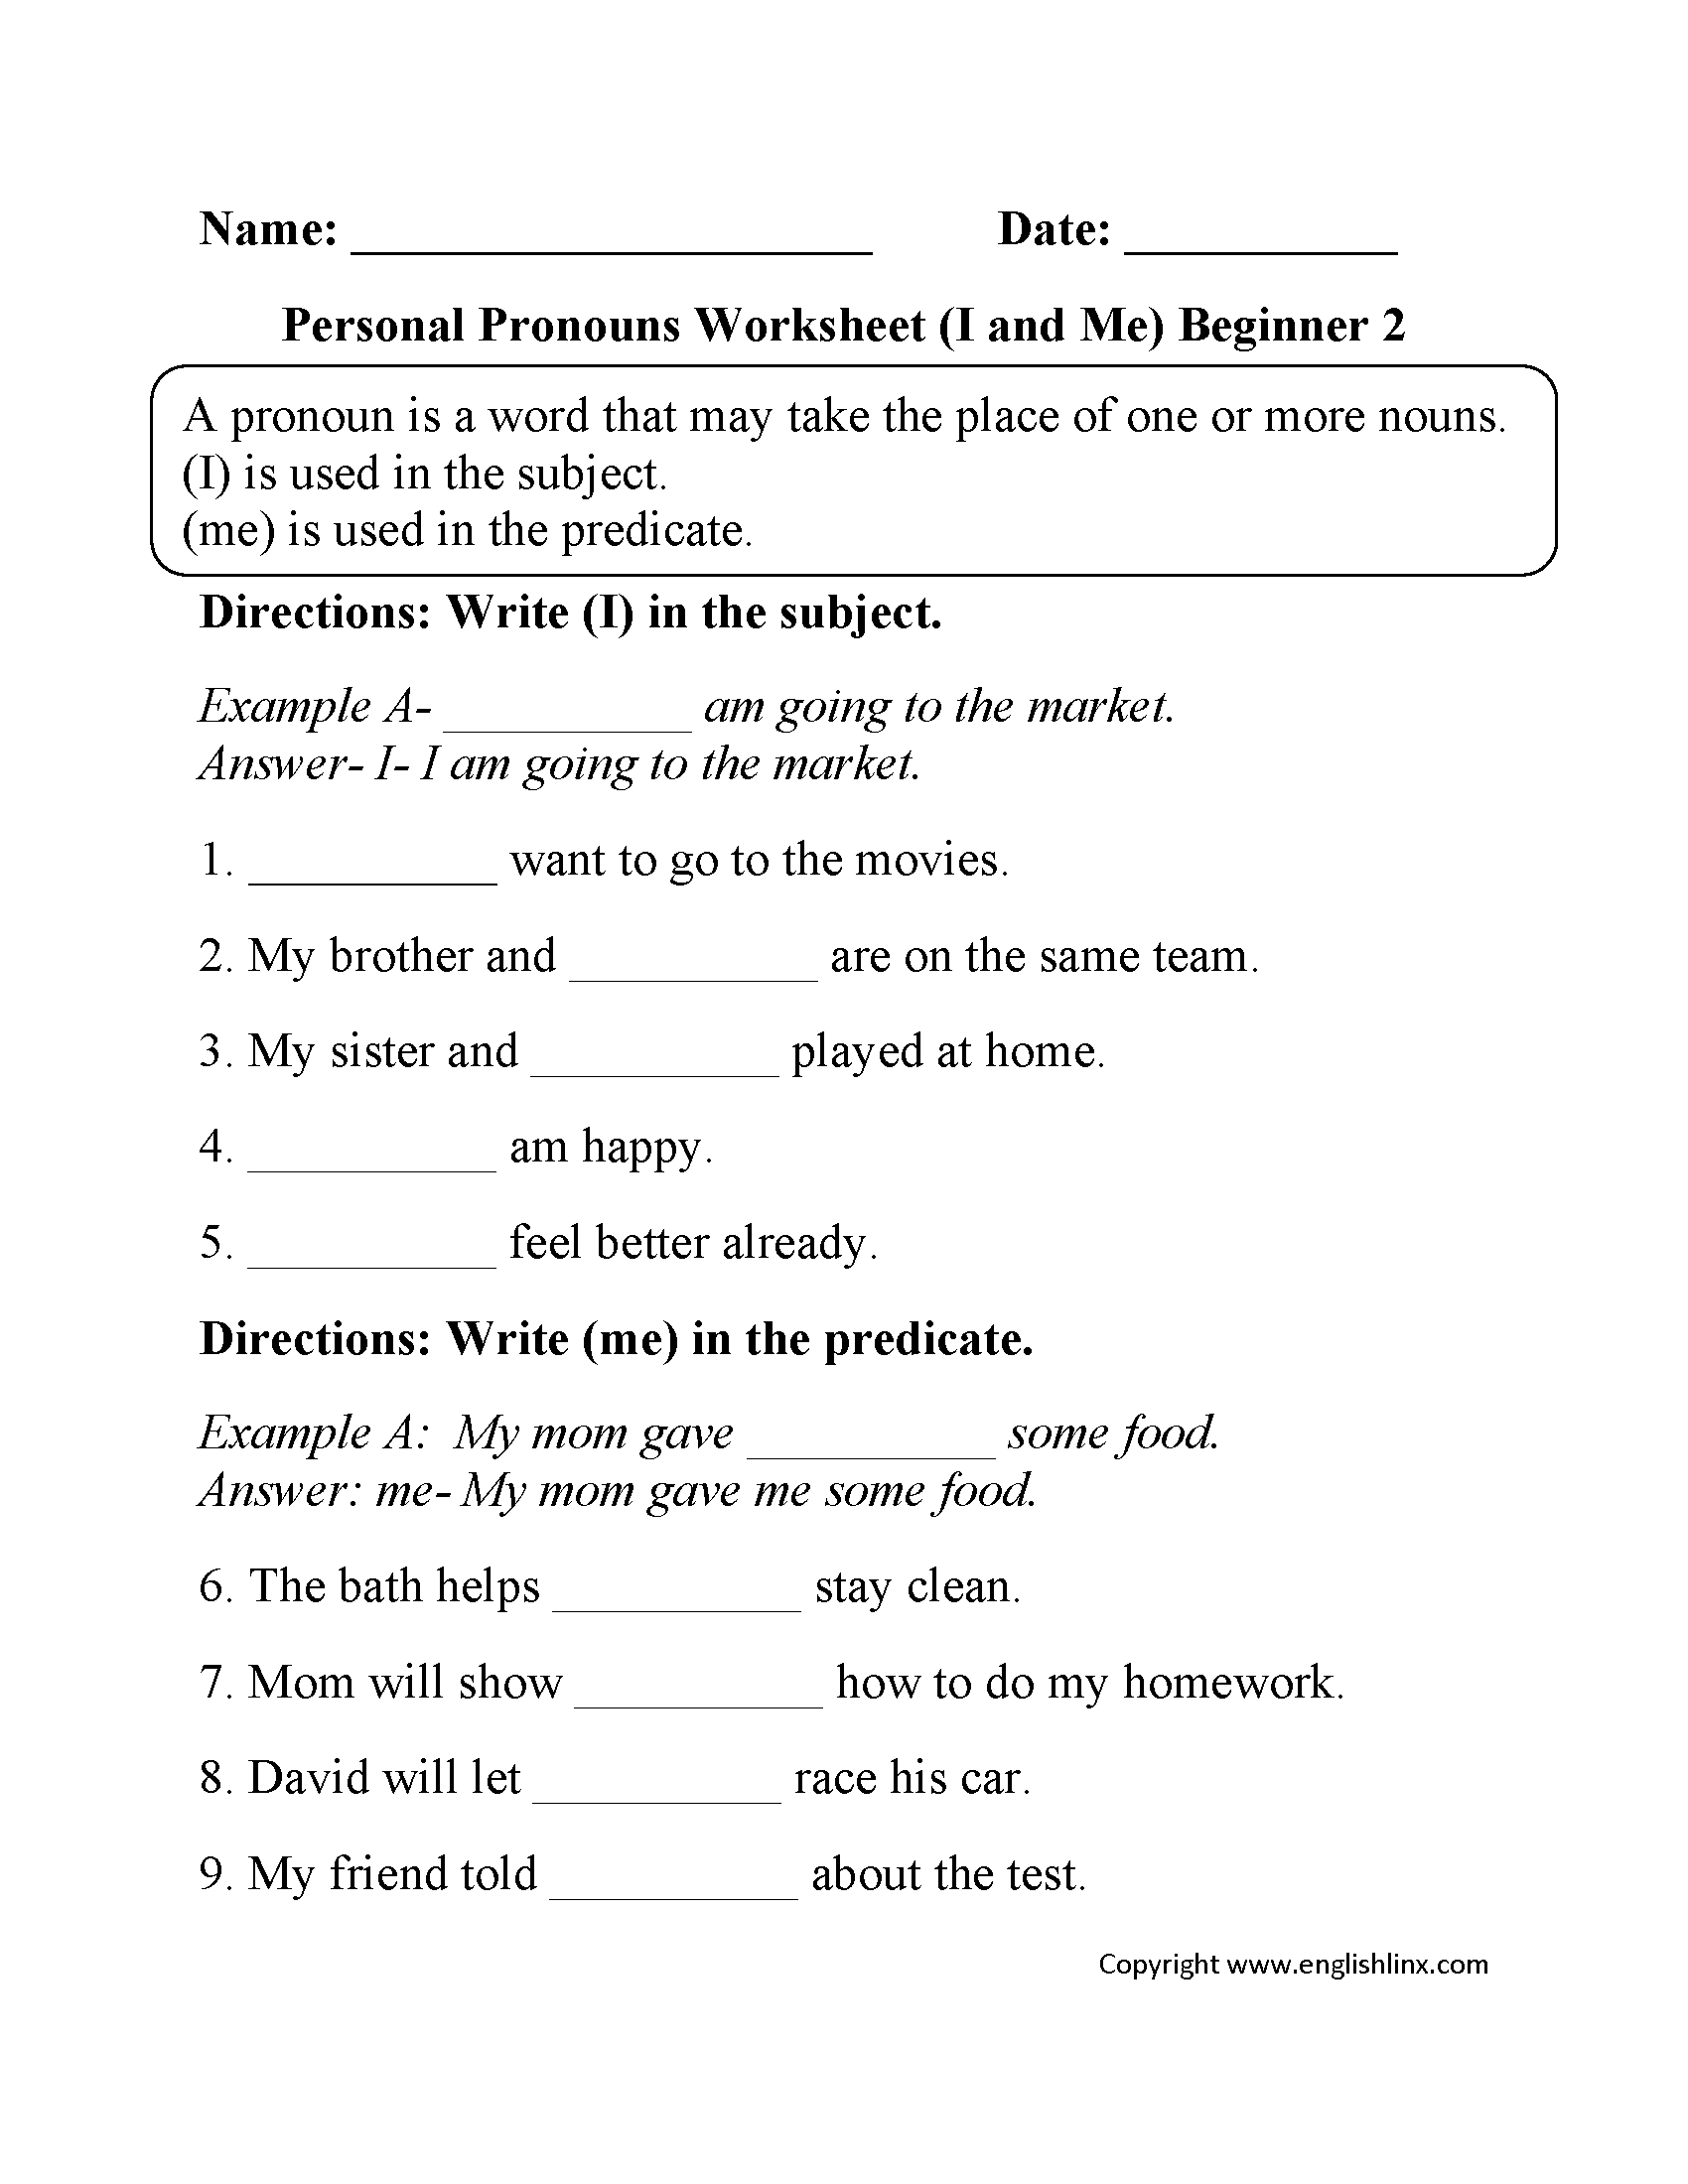 Personal Pronouns Worksheets Esl Pinterest Pronoun Worksheets